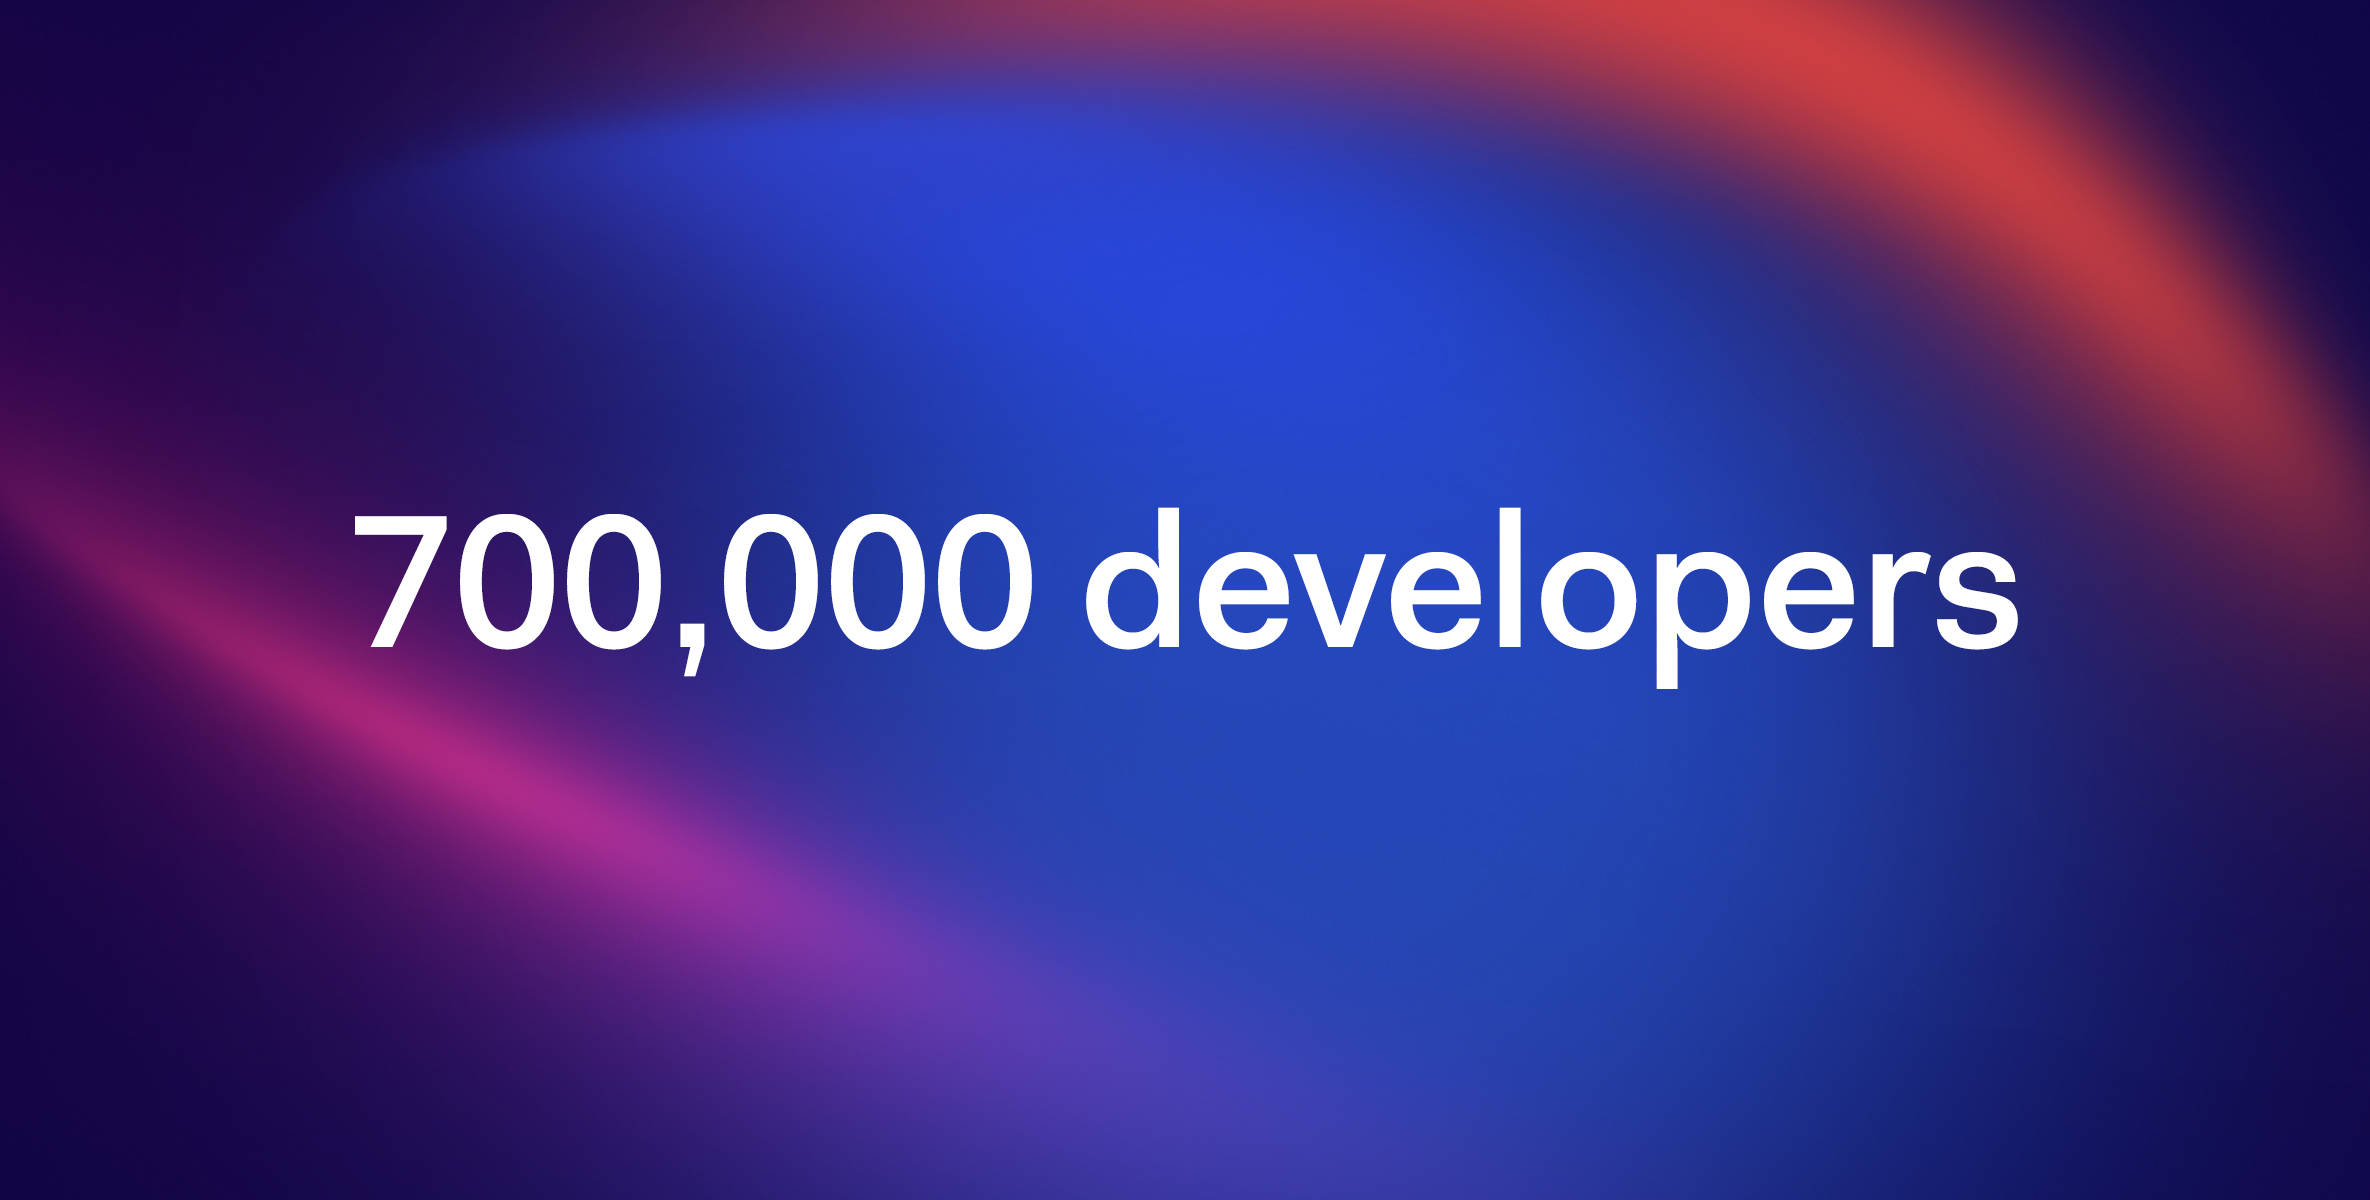 After six years, Auth0's blog is now read by more than 700,000 developers monthly.